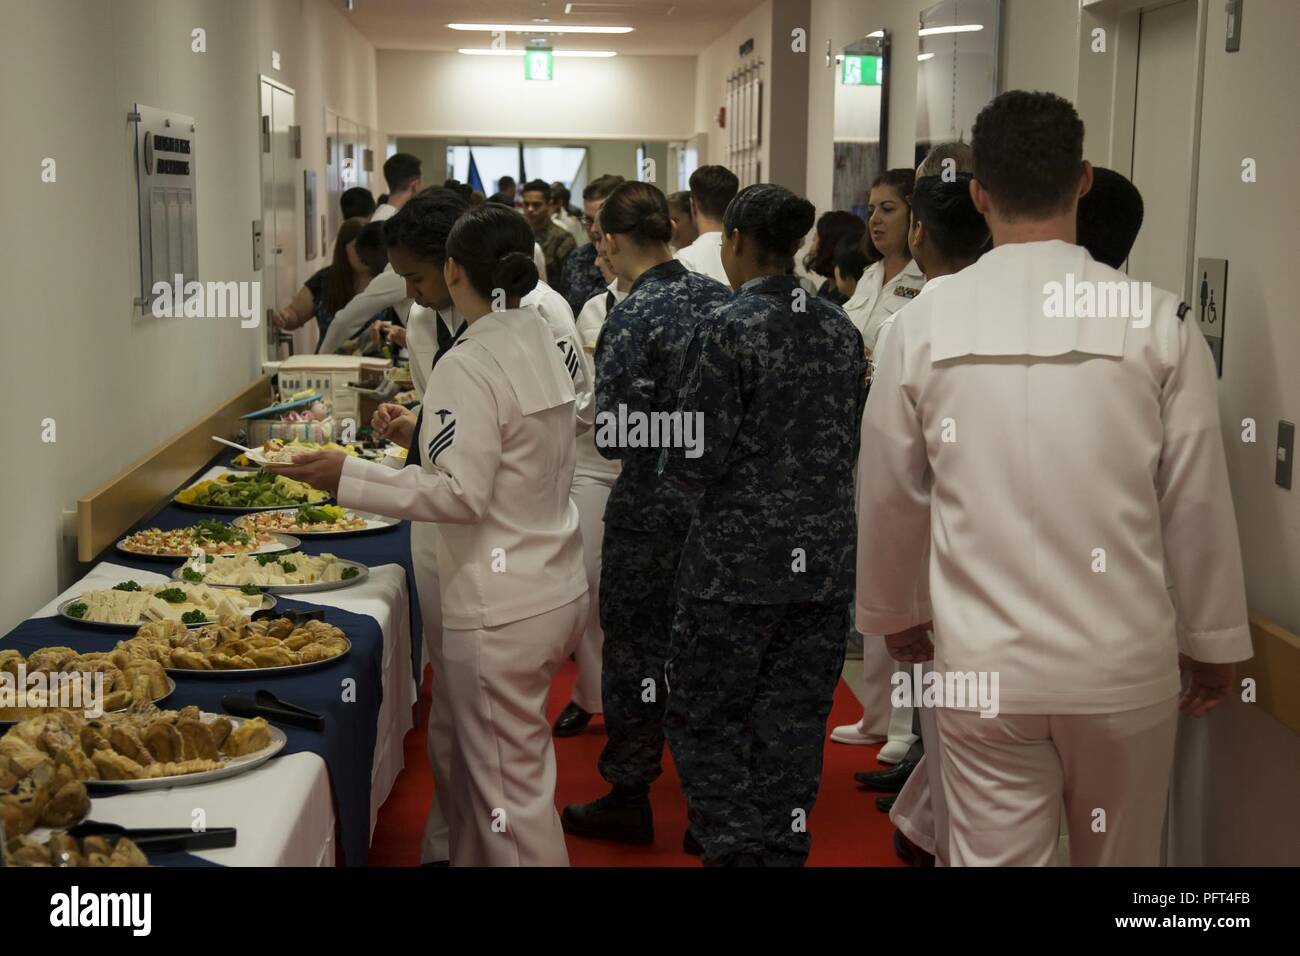 U.S. Service Members gather around a refreshment table during the grand opening of Robert M. Casey Naval Family Branch Clinic Iwakuni at Marine Corps Air Station Iwakuni, Japan, May 30, 2018. The staff hosted the grand opening in order to display the facility's new and improved capabilities. Stock Photo